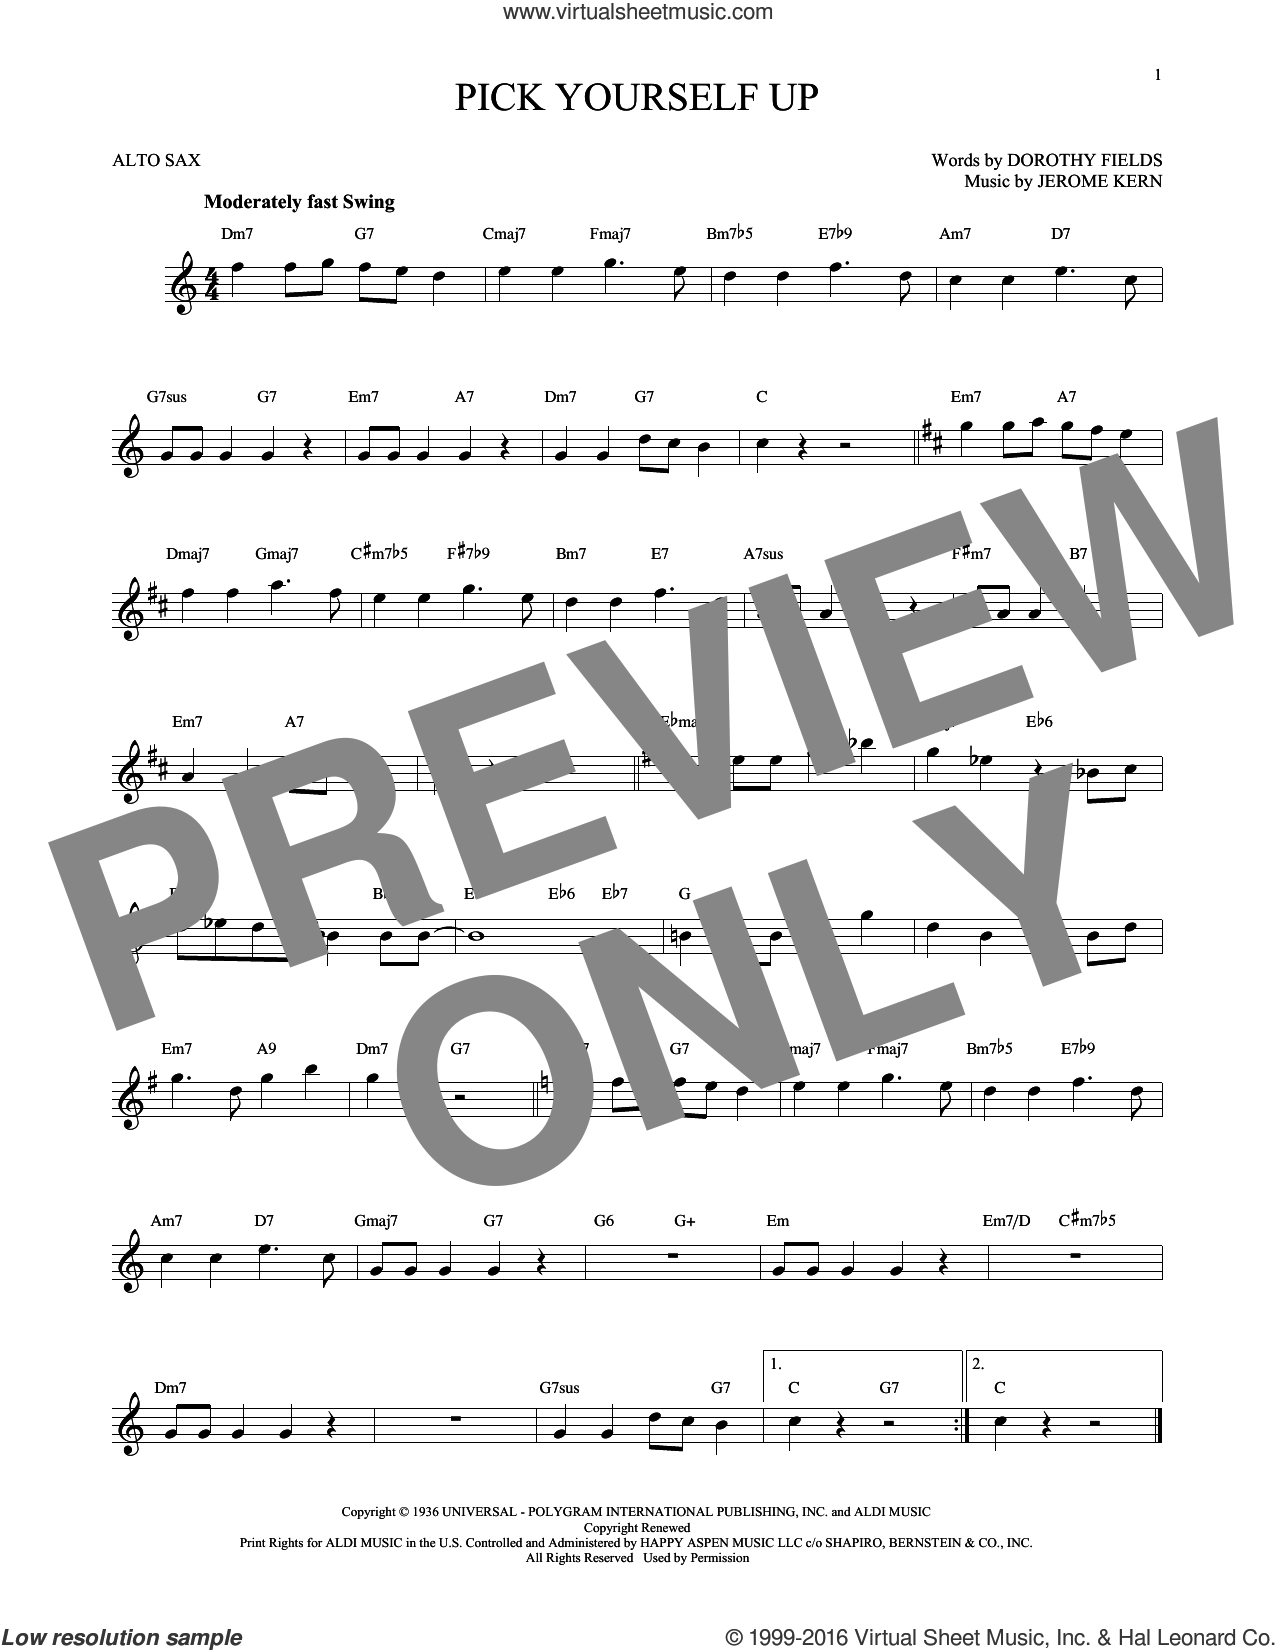 Pick Yourself Up sheet music for alto saxophone solo by Jerome Kern and Dorothy Fields, intermediate